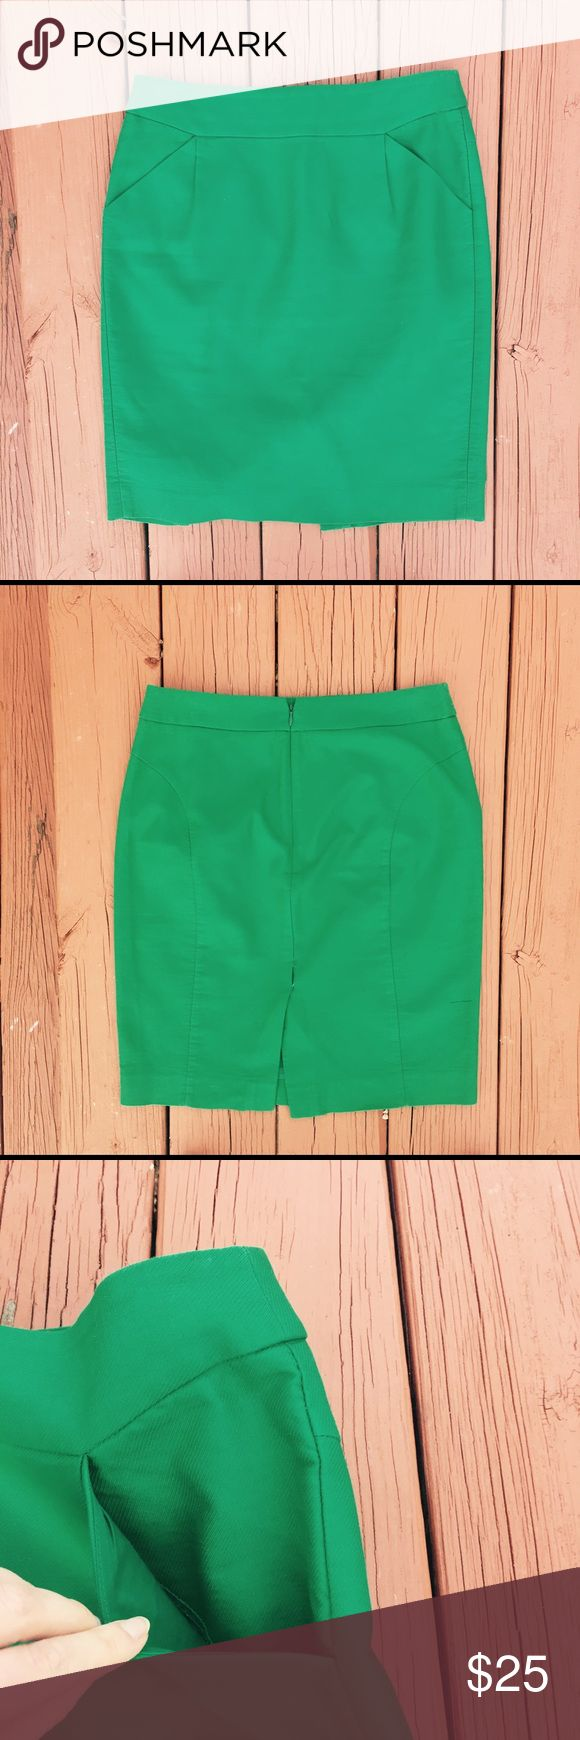 J. Crew Emerald Green Pencil Skirt with Pockets J. Crew Emerald Green Pencil Skirt. In excellent used condition. Size 6. J. Crew Skirts Midi